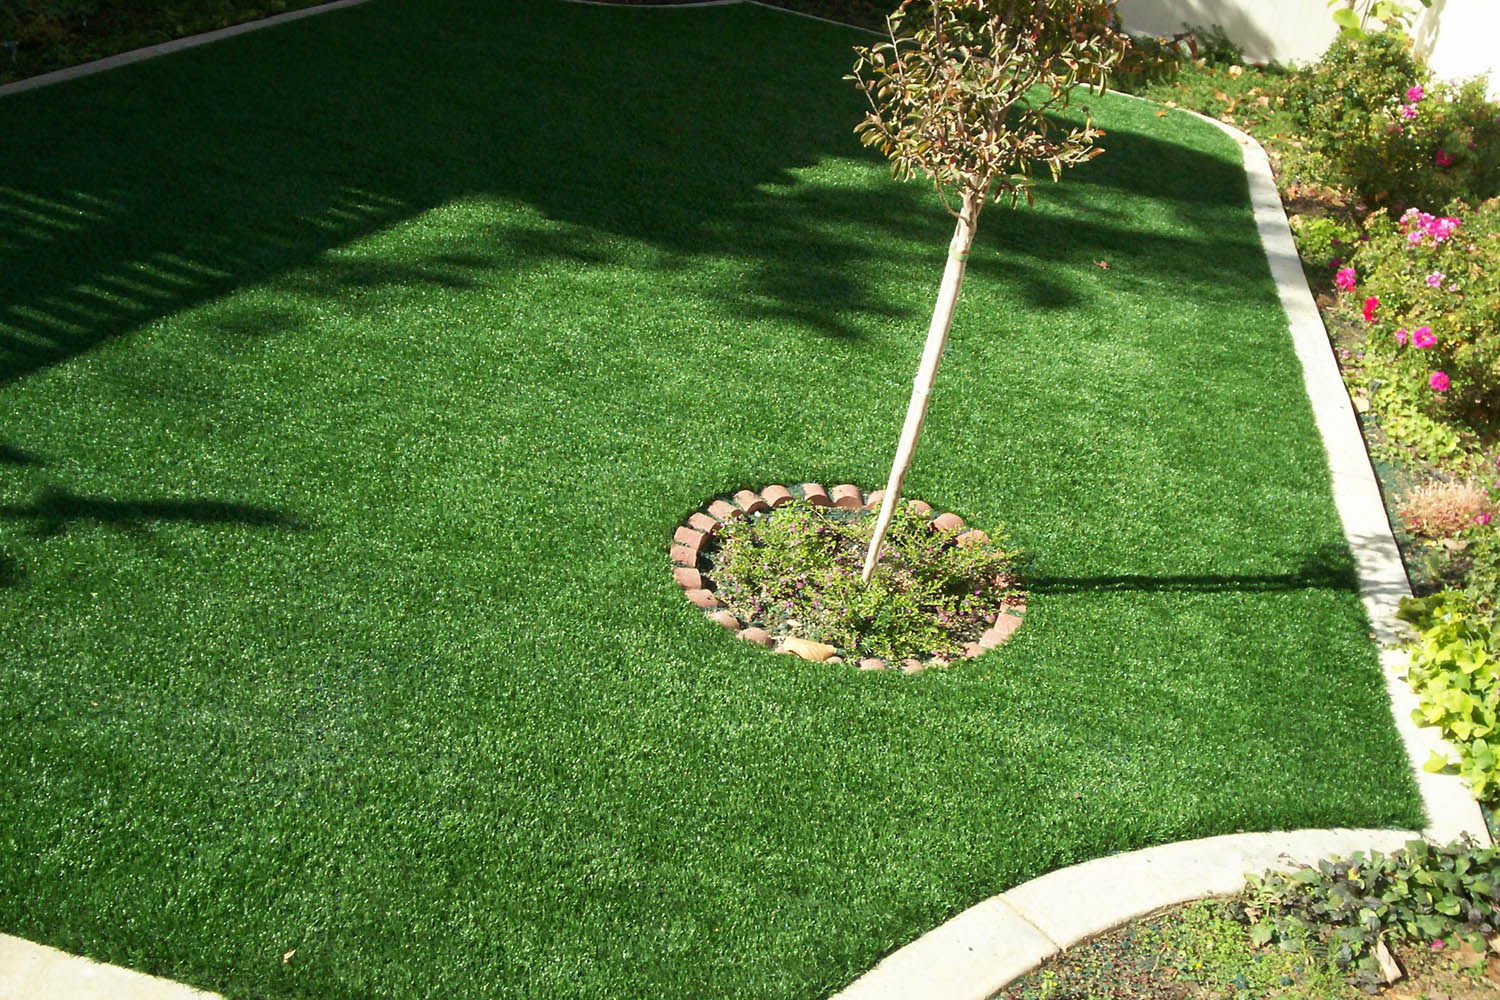 PreGra Premium Artificial Grass Gallery